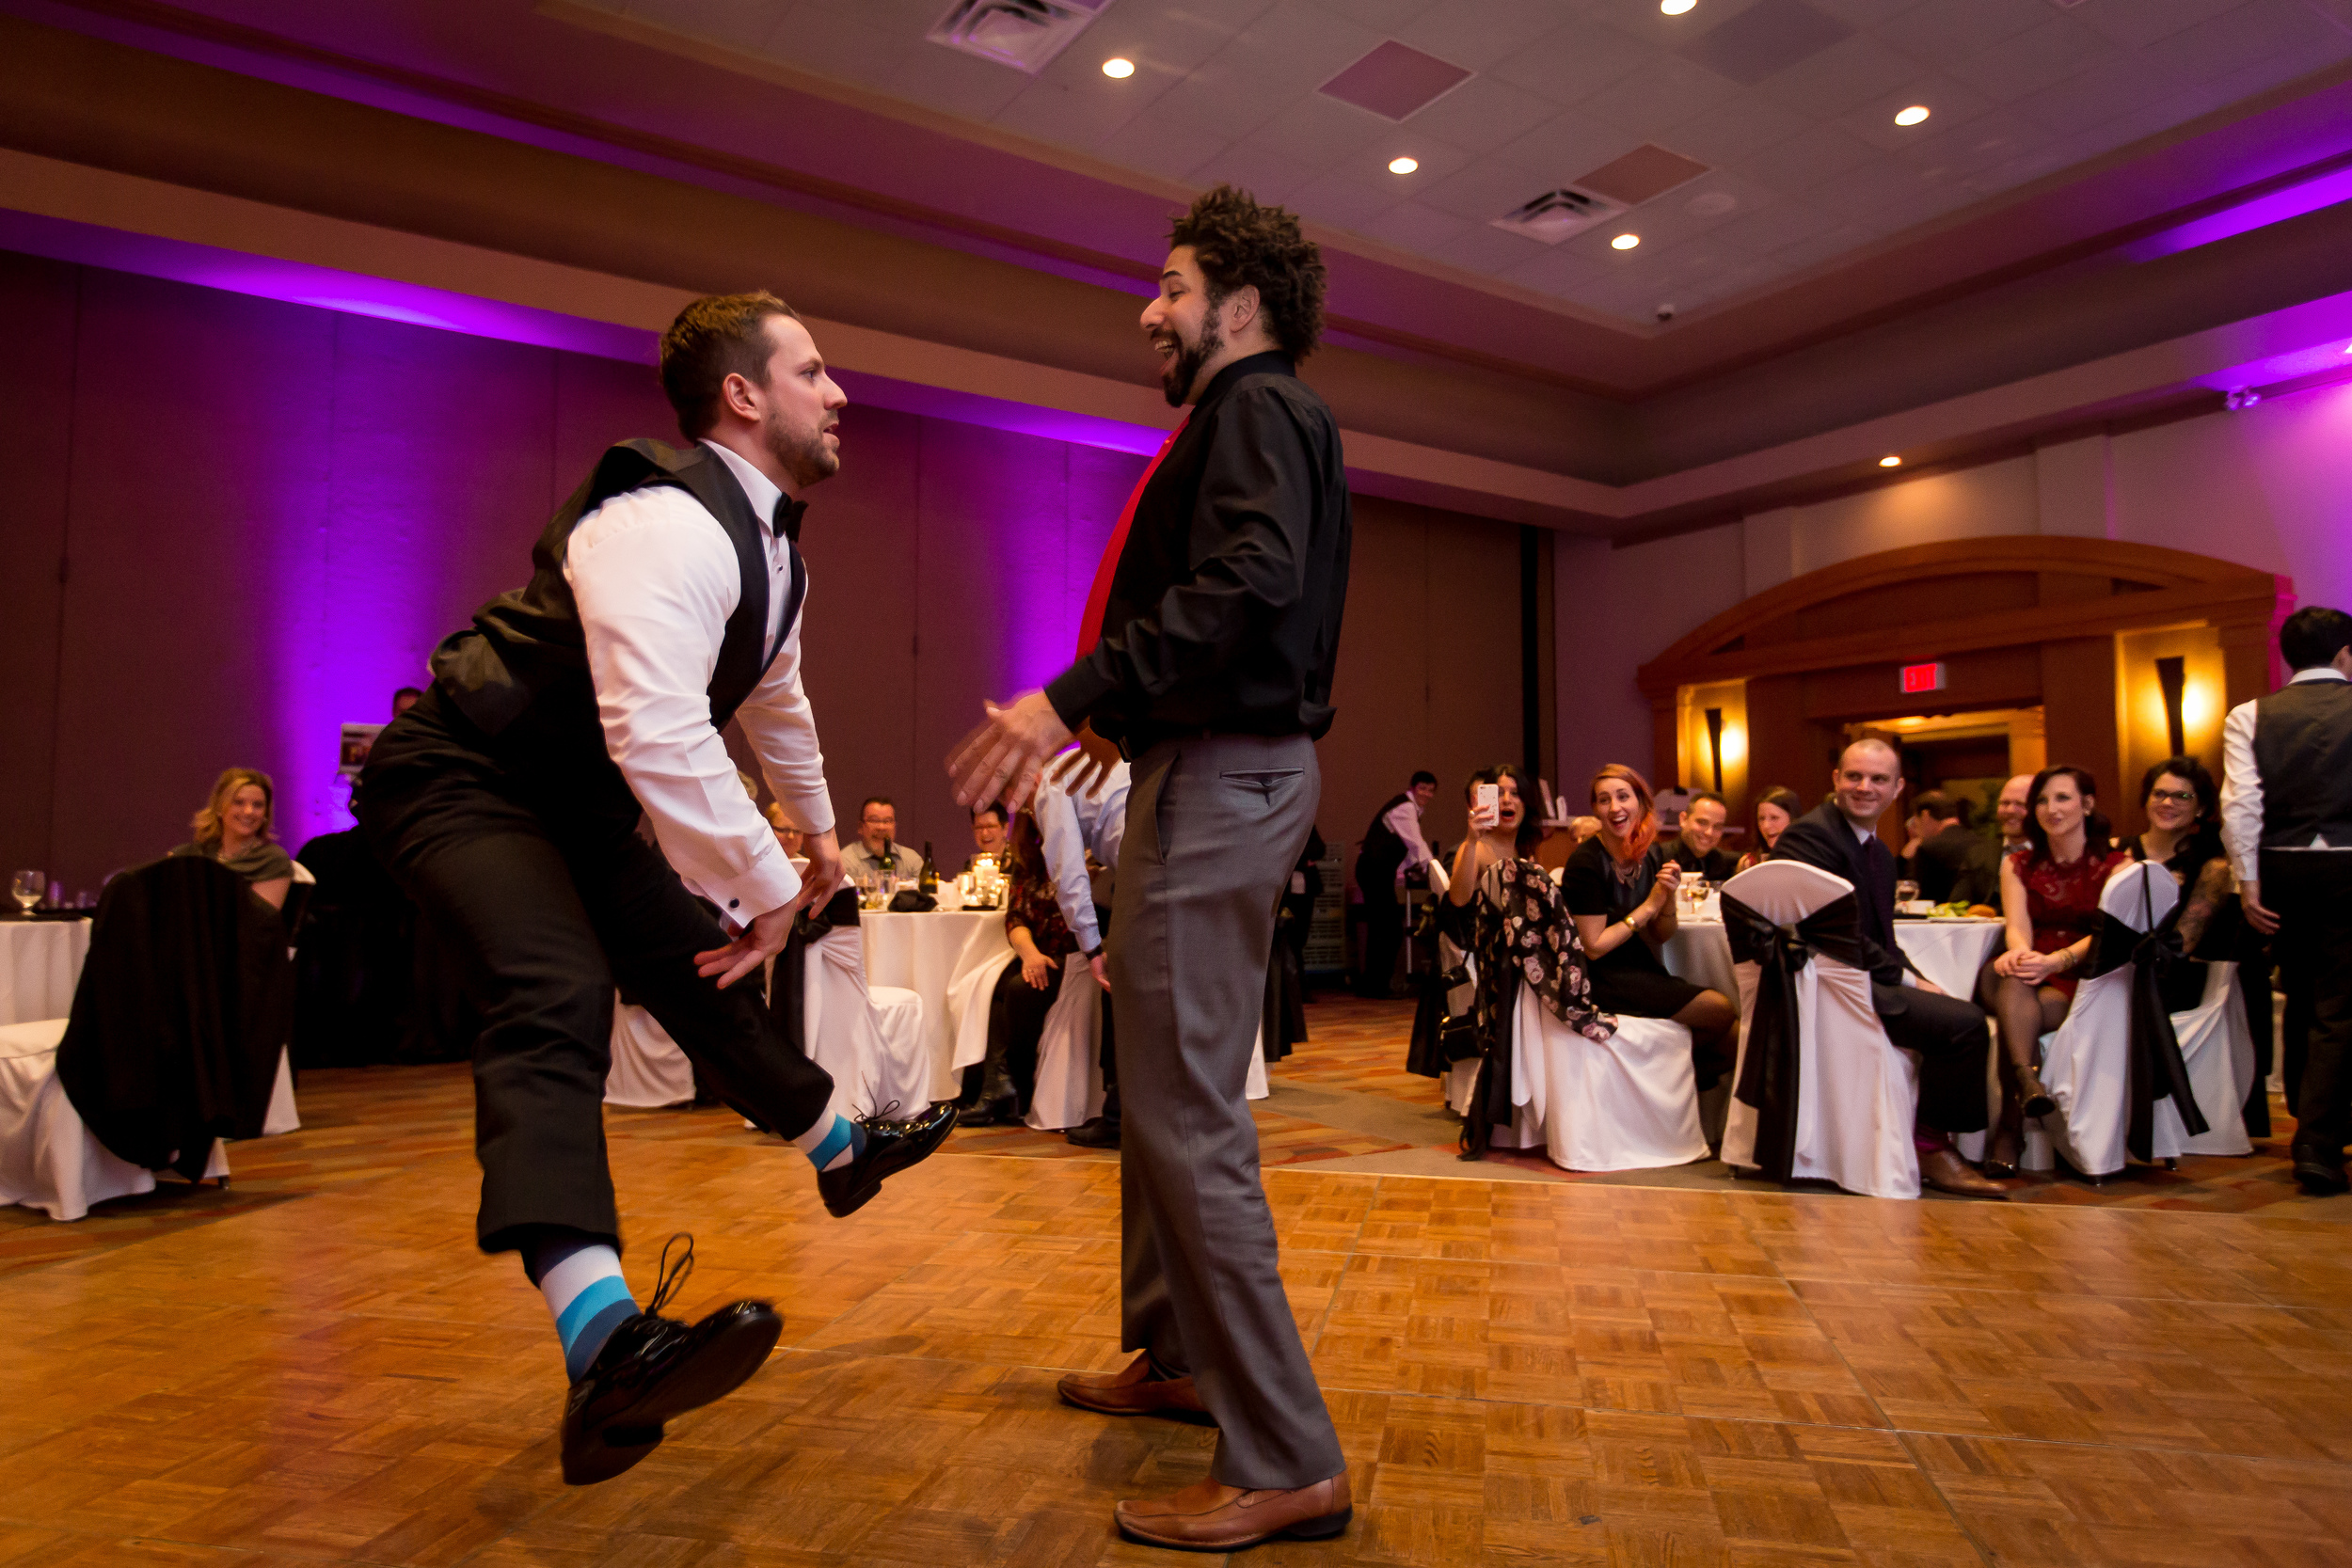 The groom and his friend having a dance-off